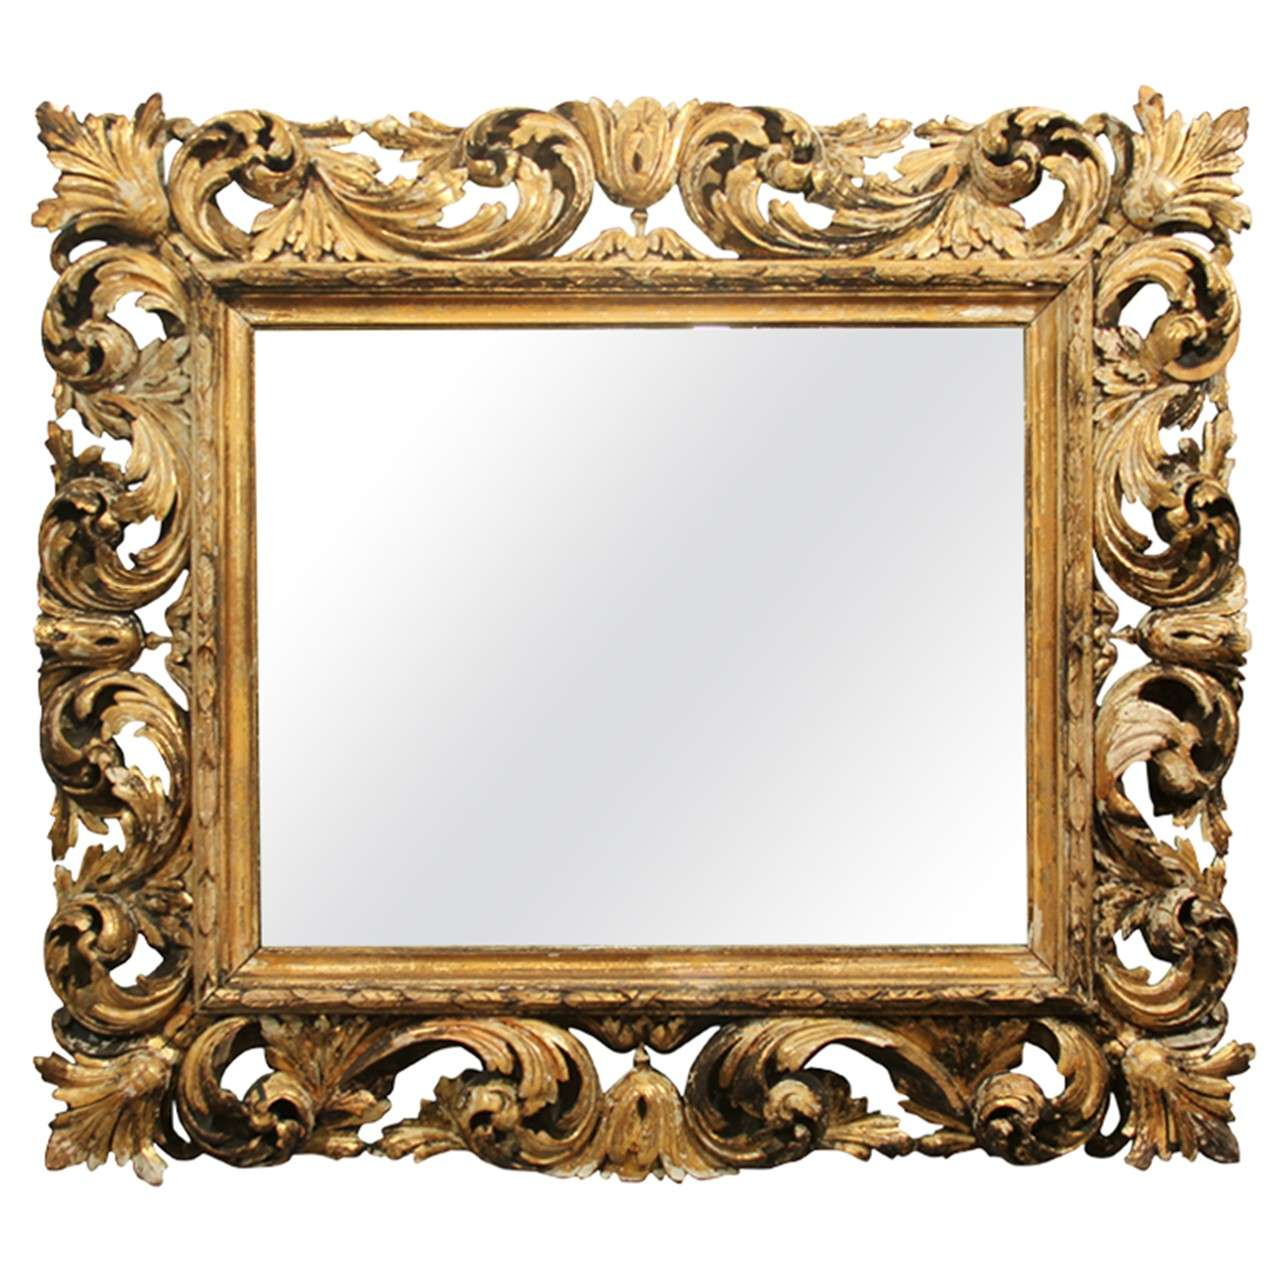 Hand carved wood frame mirror at 1stdibs for Mirror frame